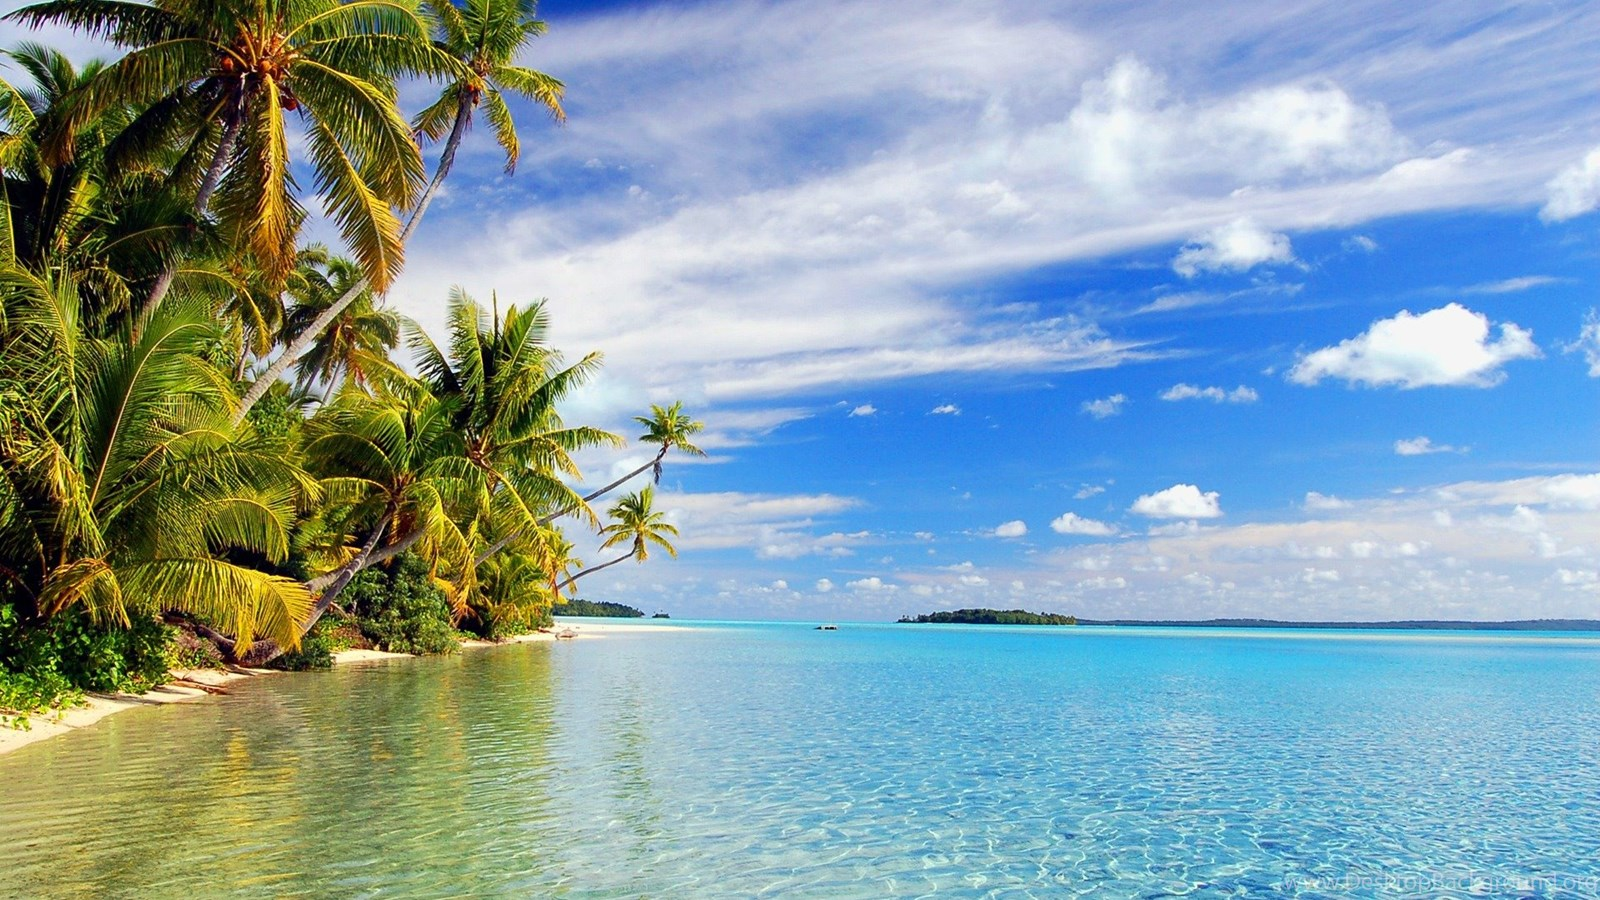 Beach nice background wallpapers - Windows 10 Wallpapers ...